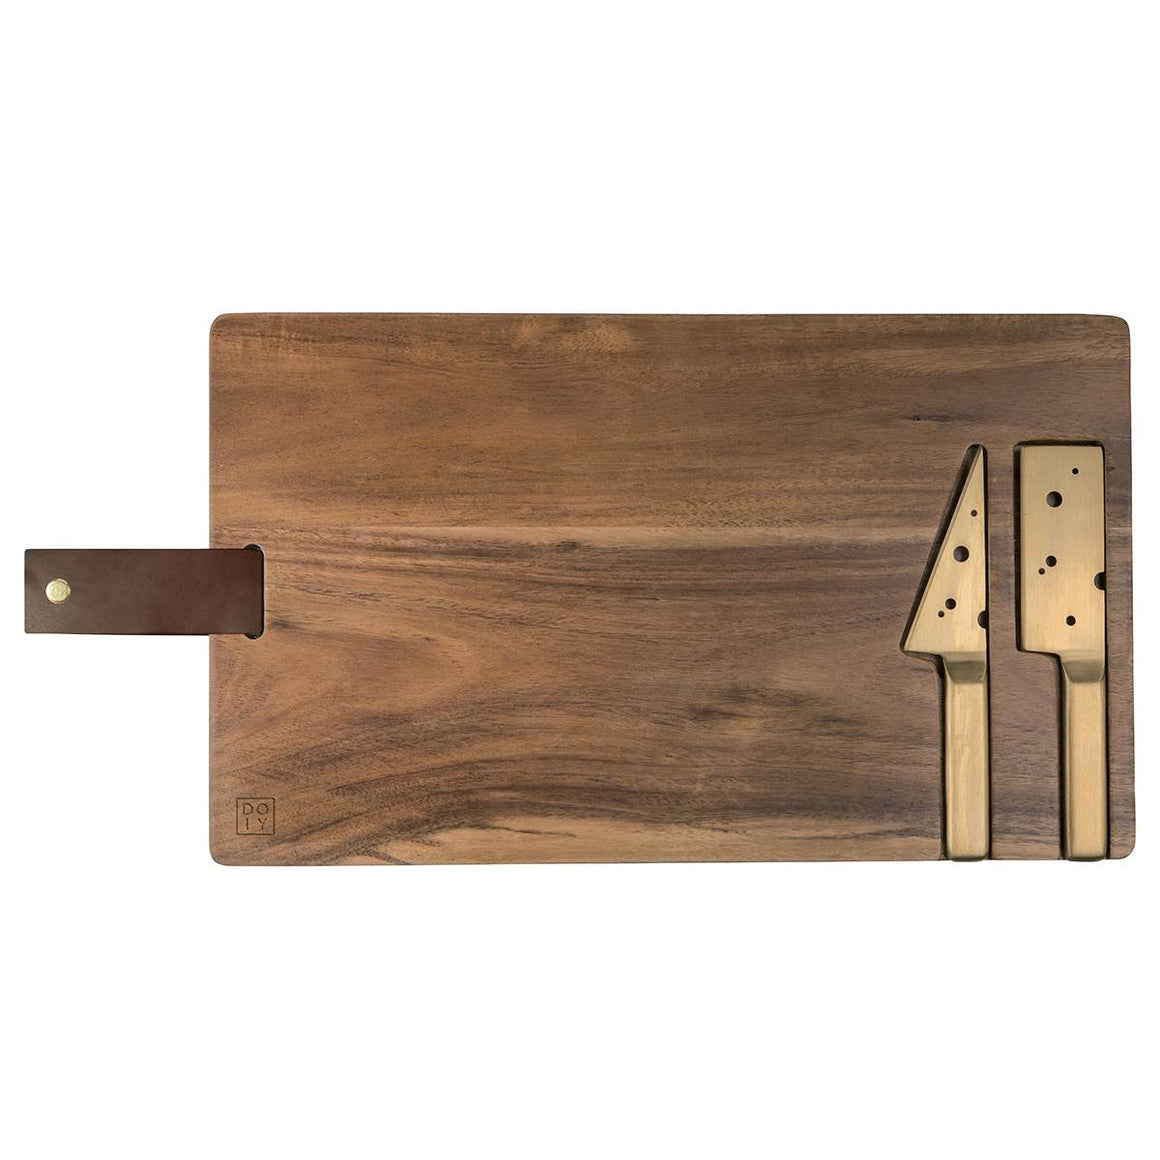 A rectangular Cheese serving board in a dark Acacia wood. Two gold tones knives are inset into recesses in the board. They are stylised and the blades contain holes mimicking a Jarlsberg holey cheese. There is a dark brown leather hanging strap attached.